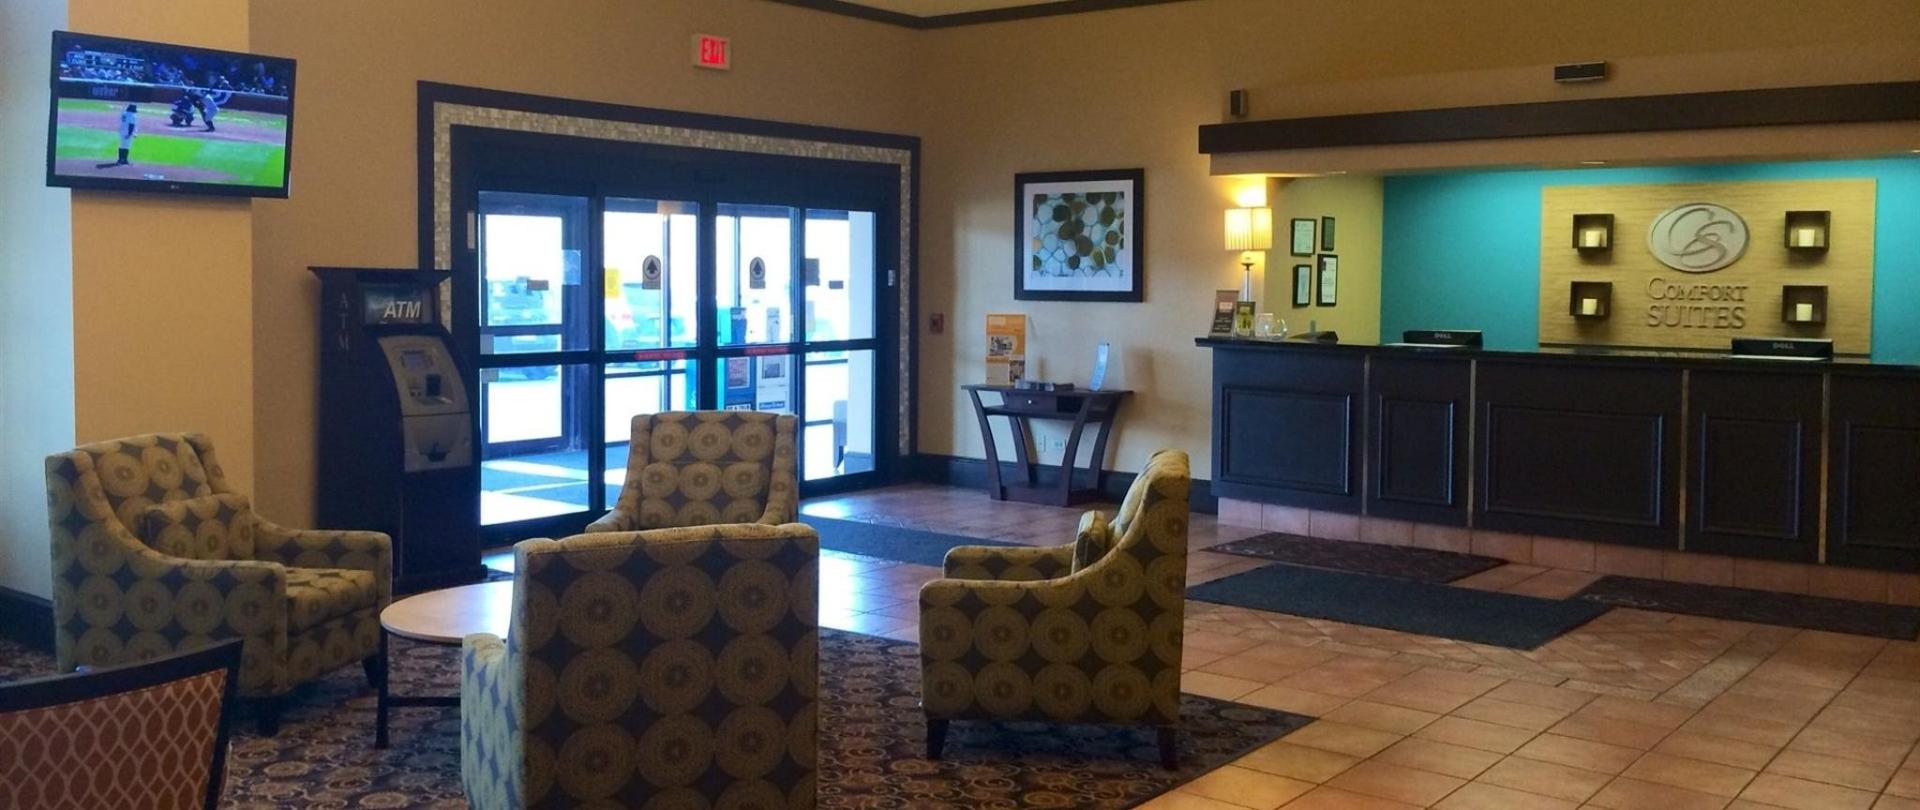 Comfort Suites O Hare Airport Schiller Park United States